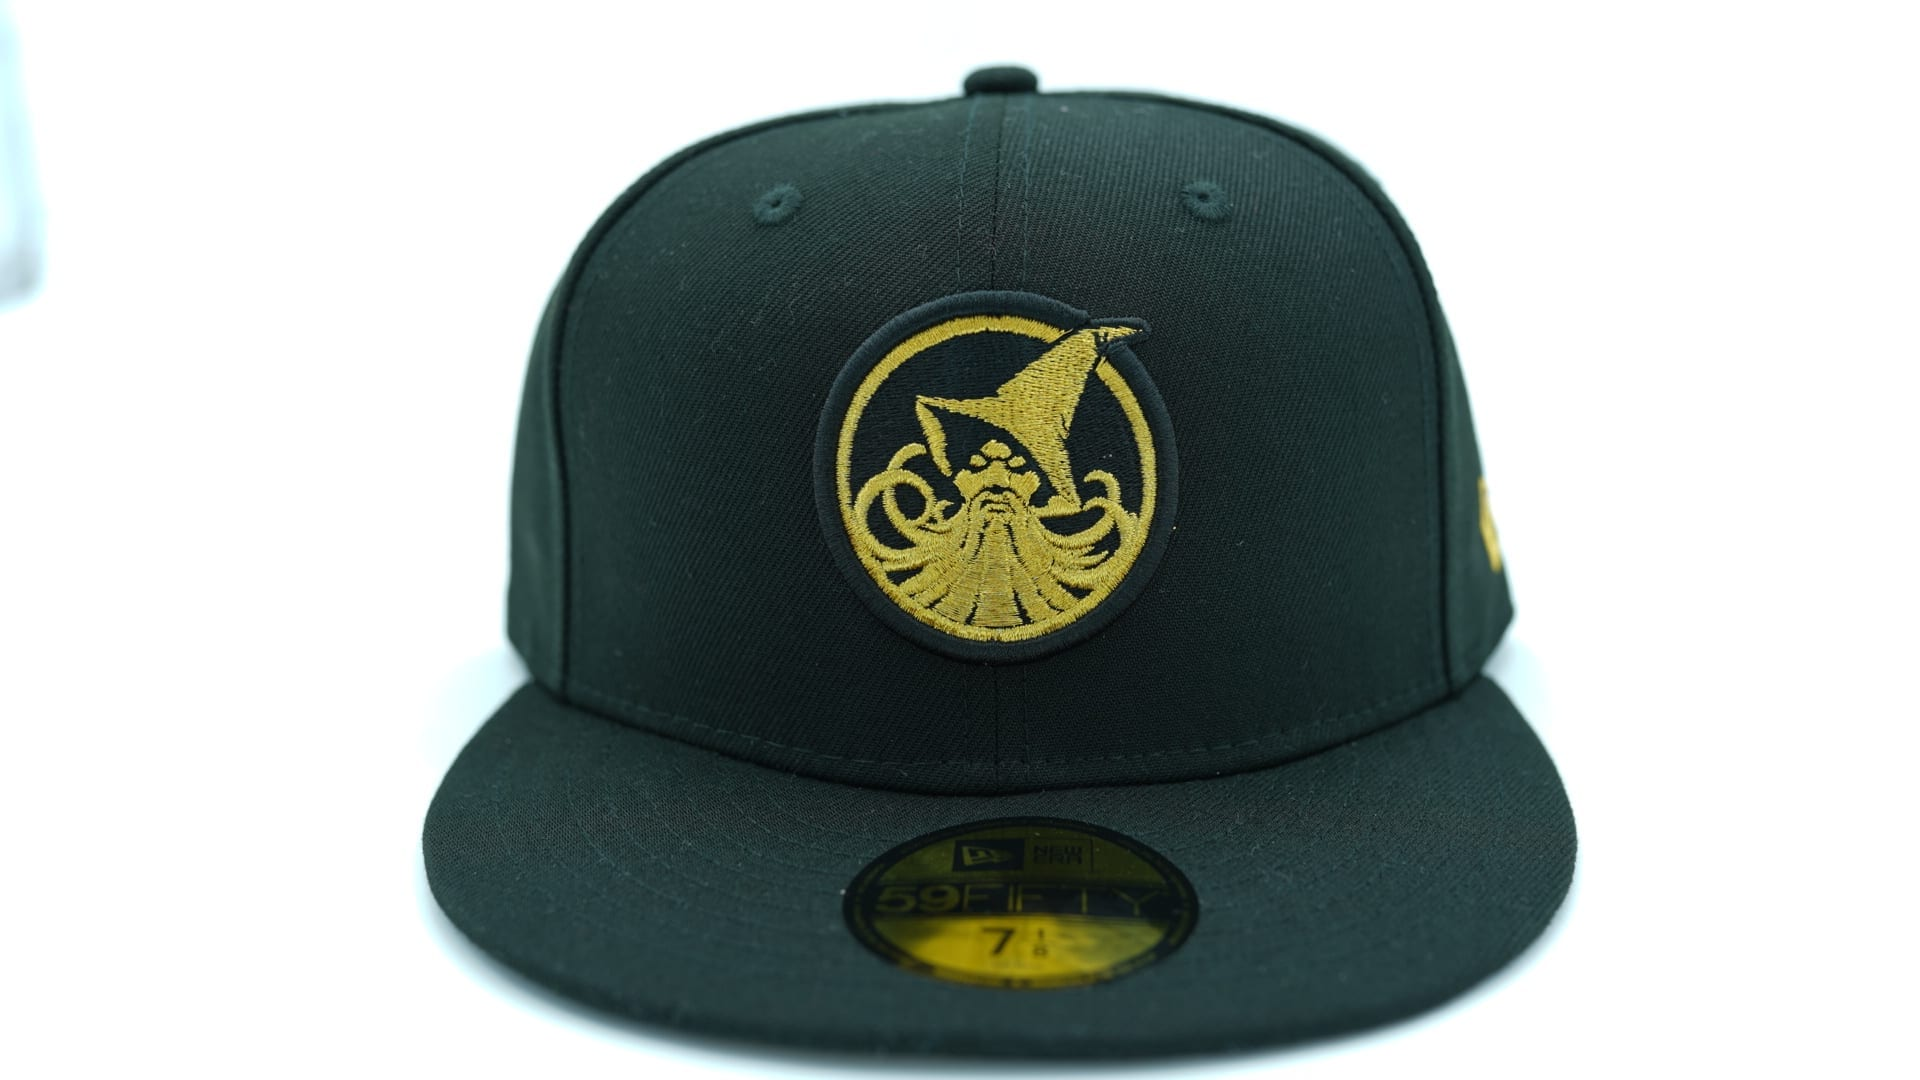 http://shop.neweracap.com/style/NCAA-Shadow-59FIFTY-Cap/20942047